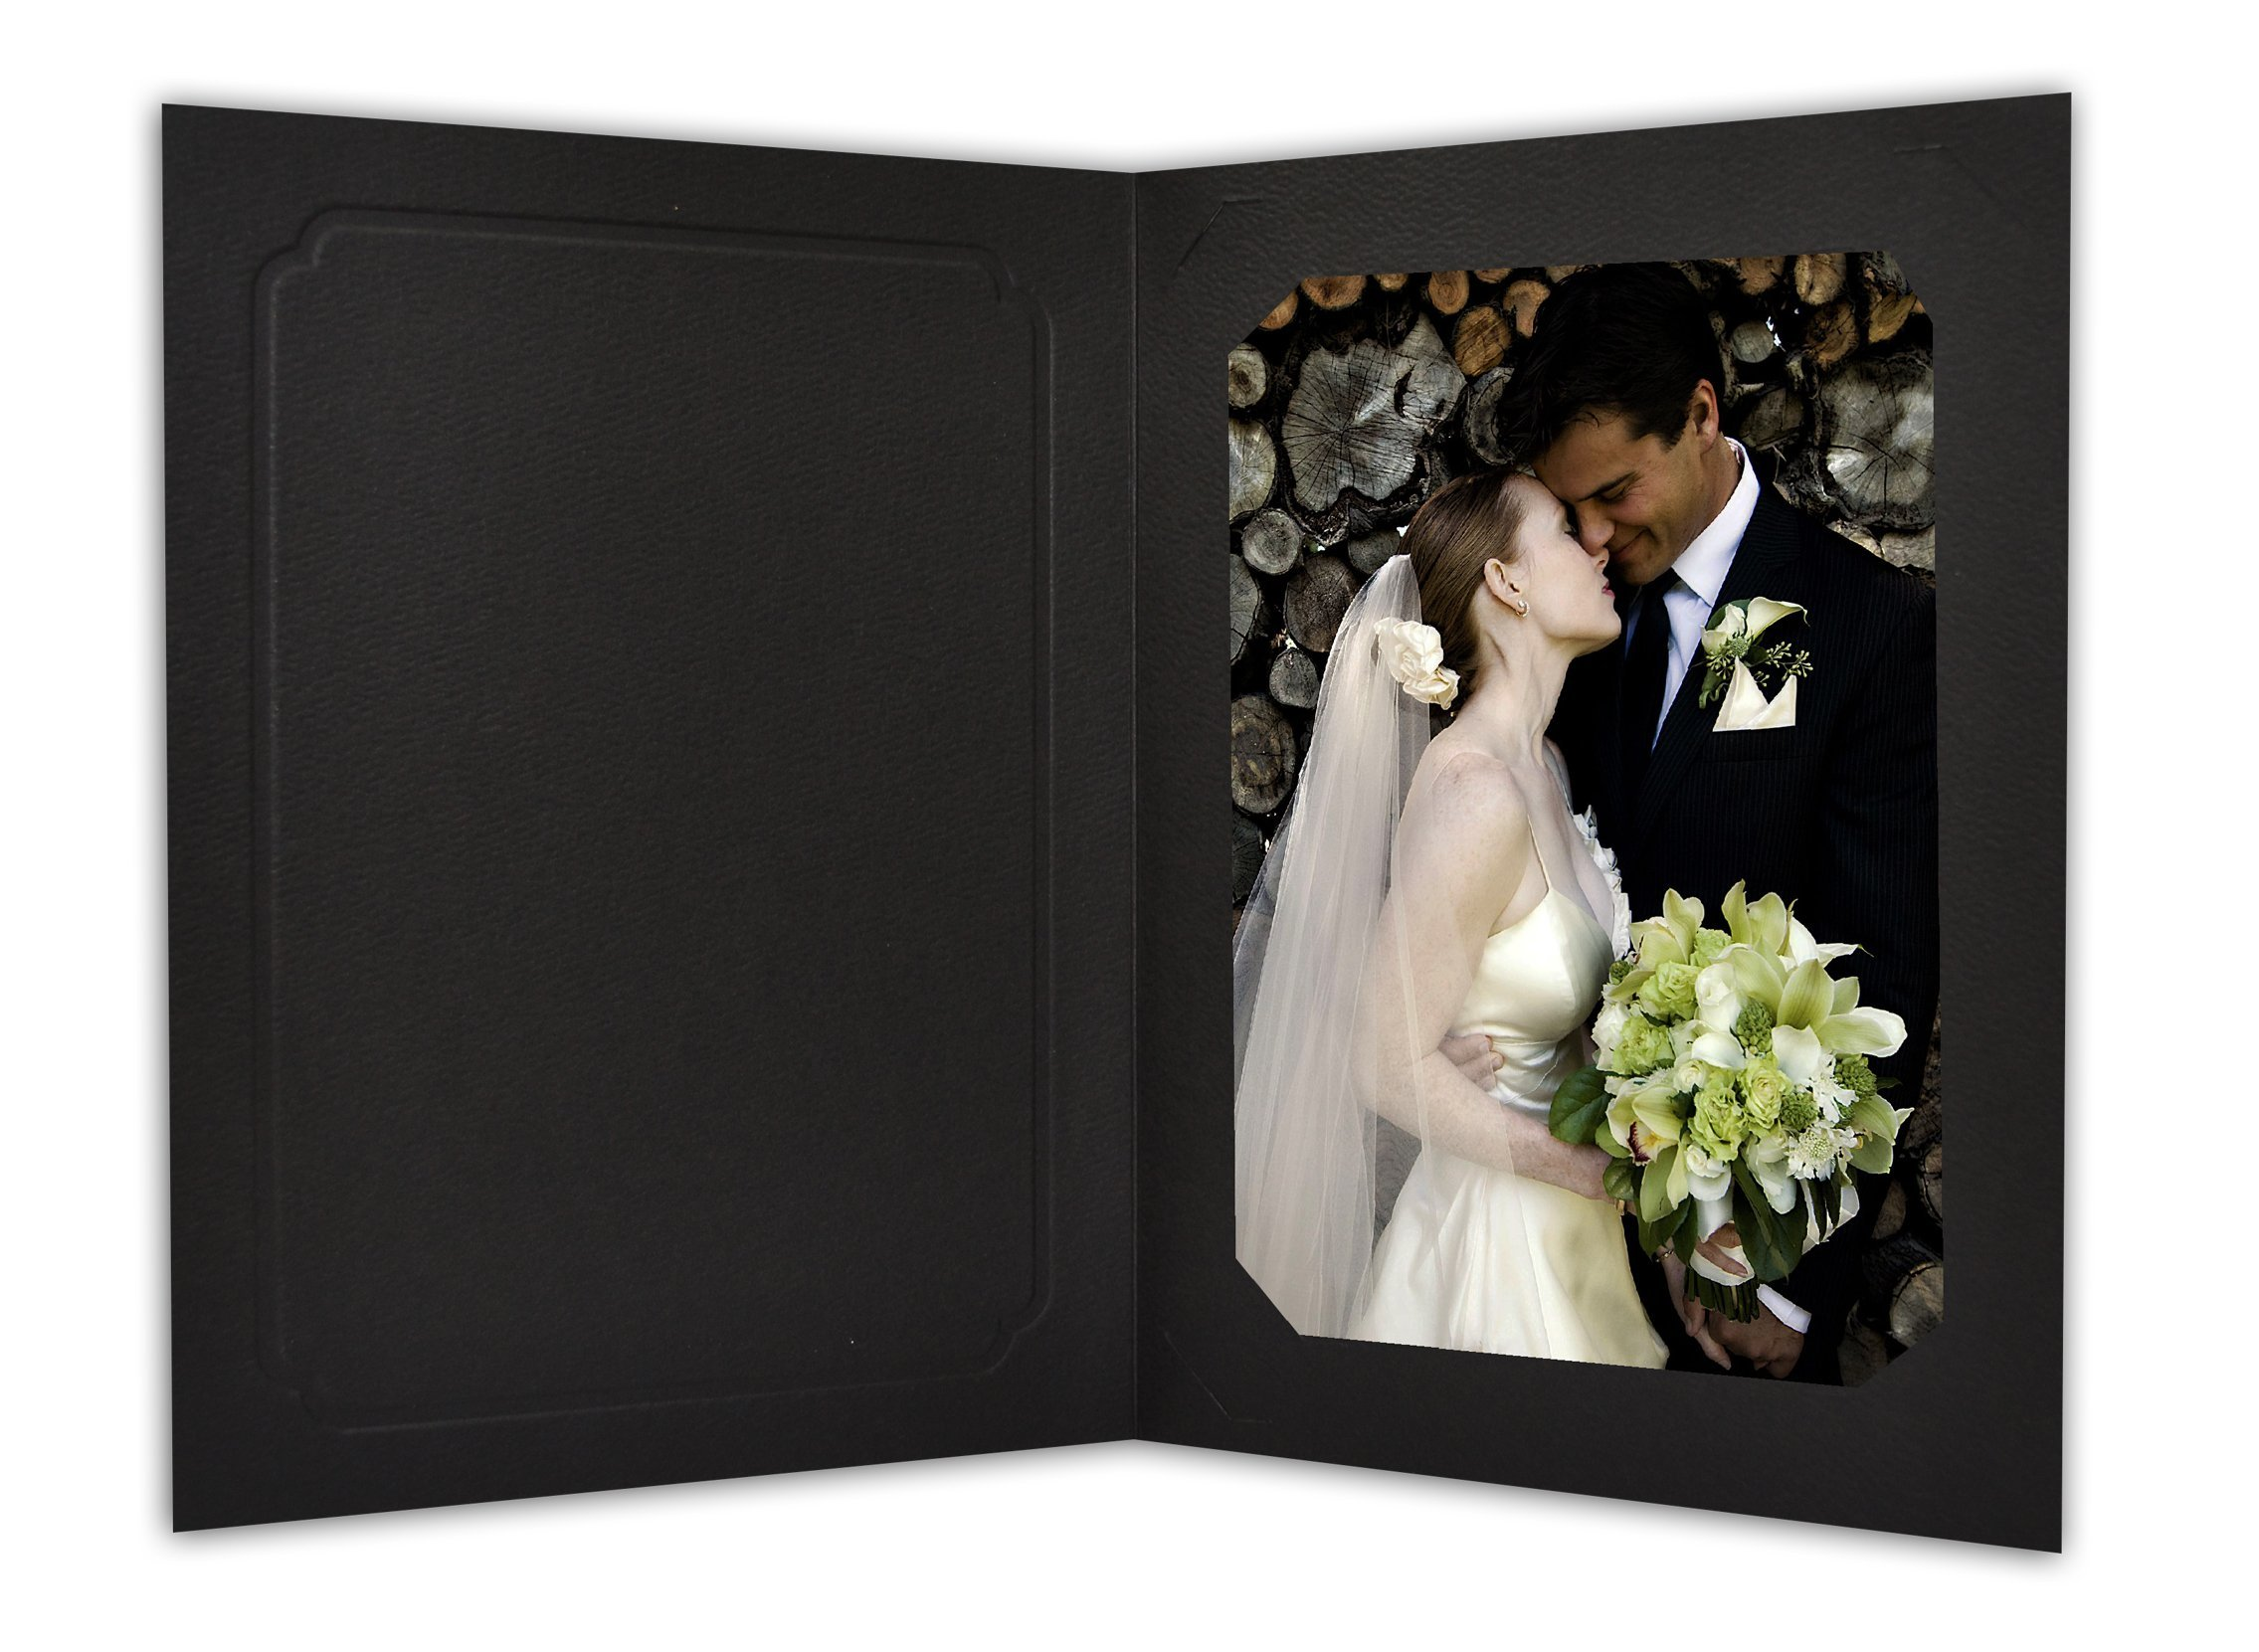 Golden State Art, Cardboard Photo Folder for 5x7/4x6 (Pack of 50) Cut corners GS010-S Black Color by Golden State Art